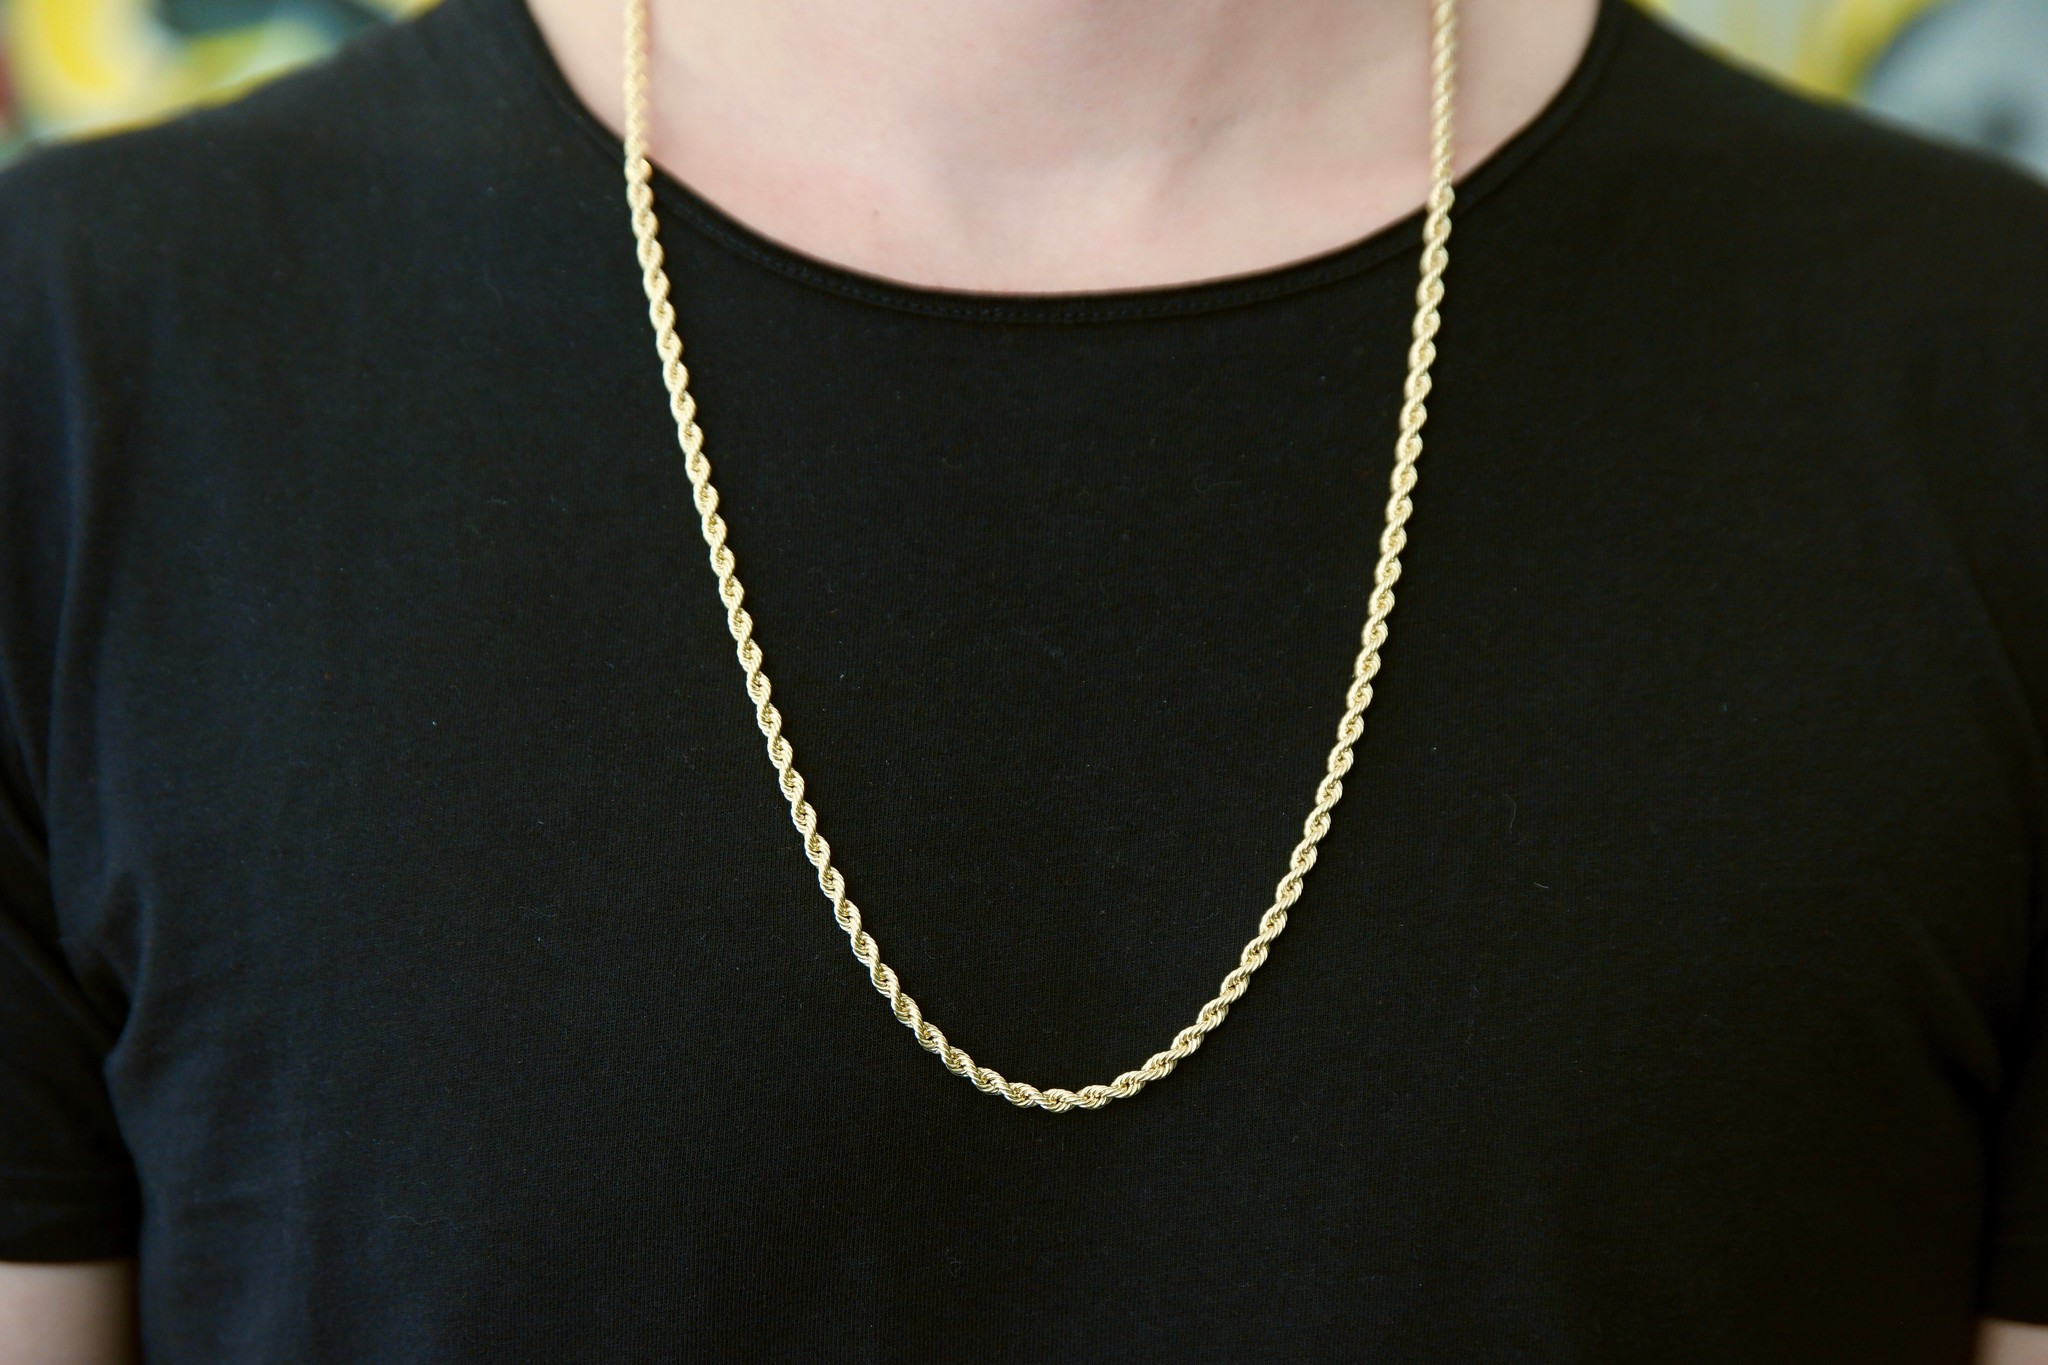 Rope Chain 14k - 3,5 mm-4